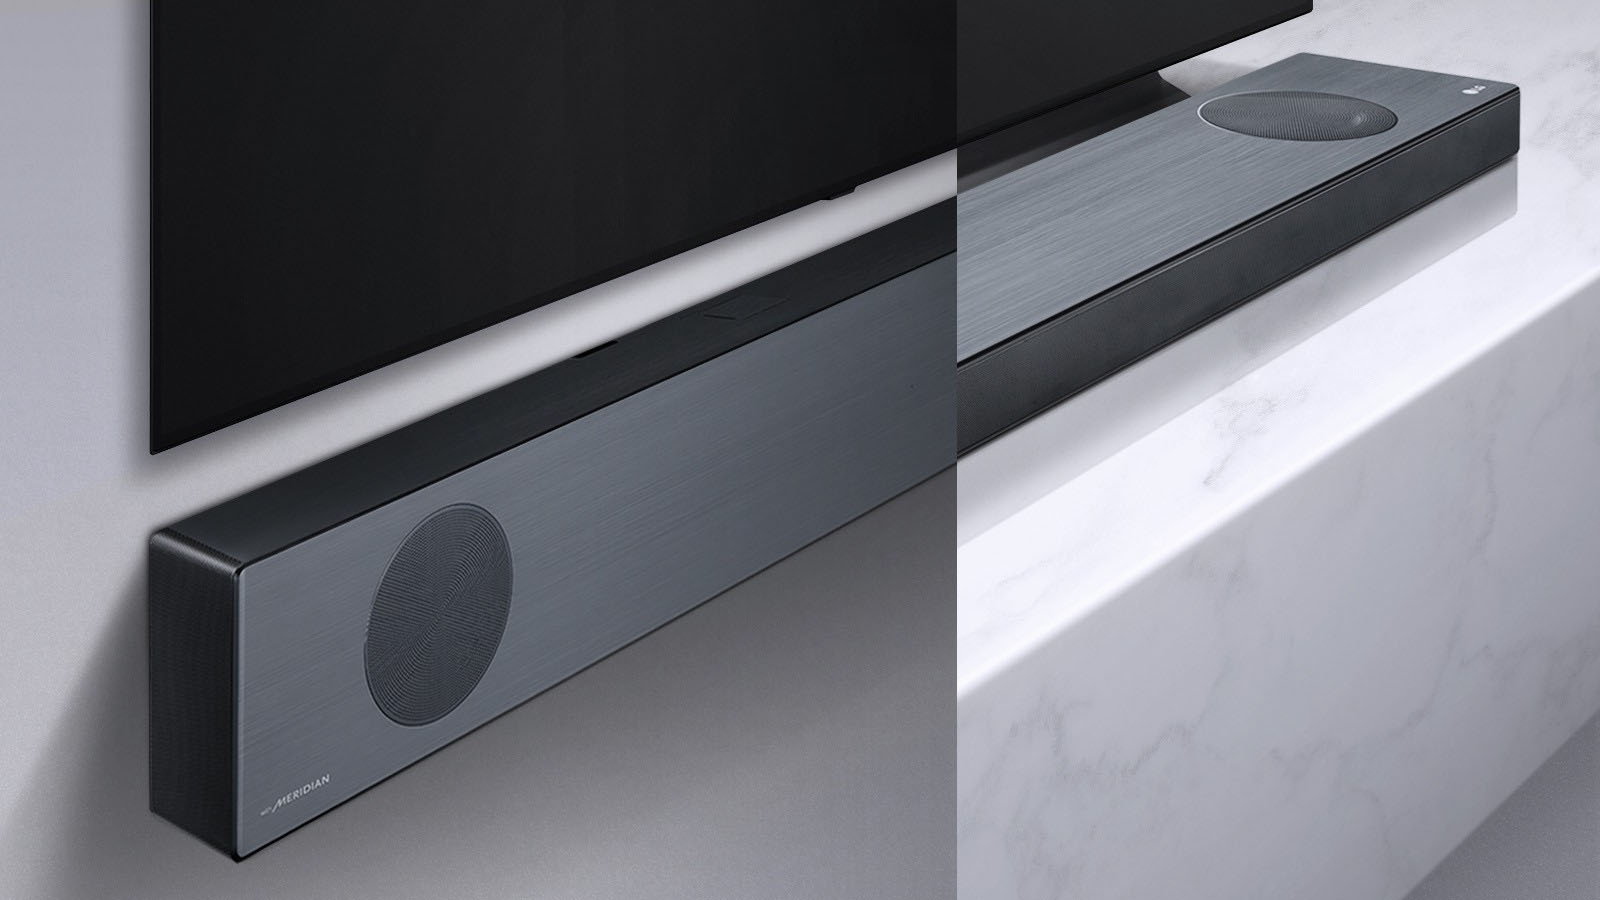 A product shot of the new LG sound bar range